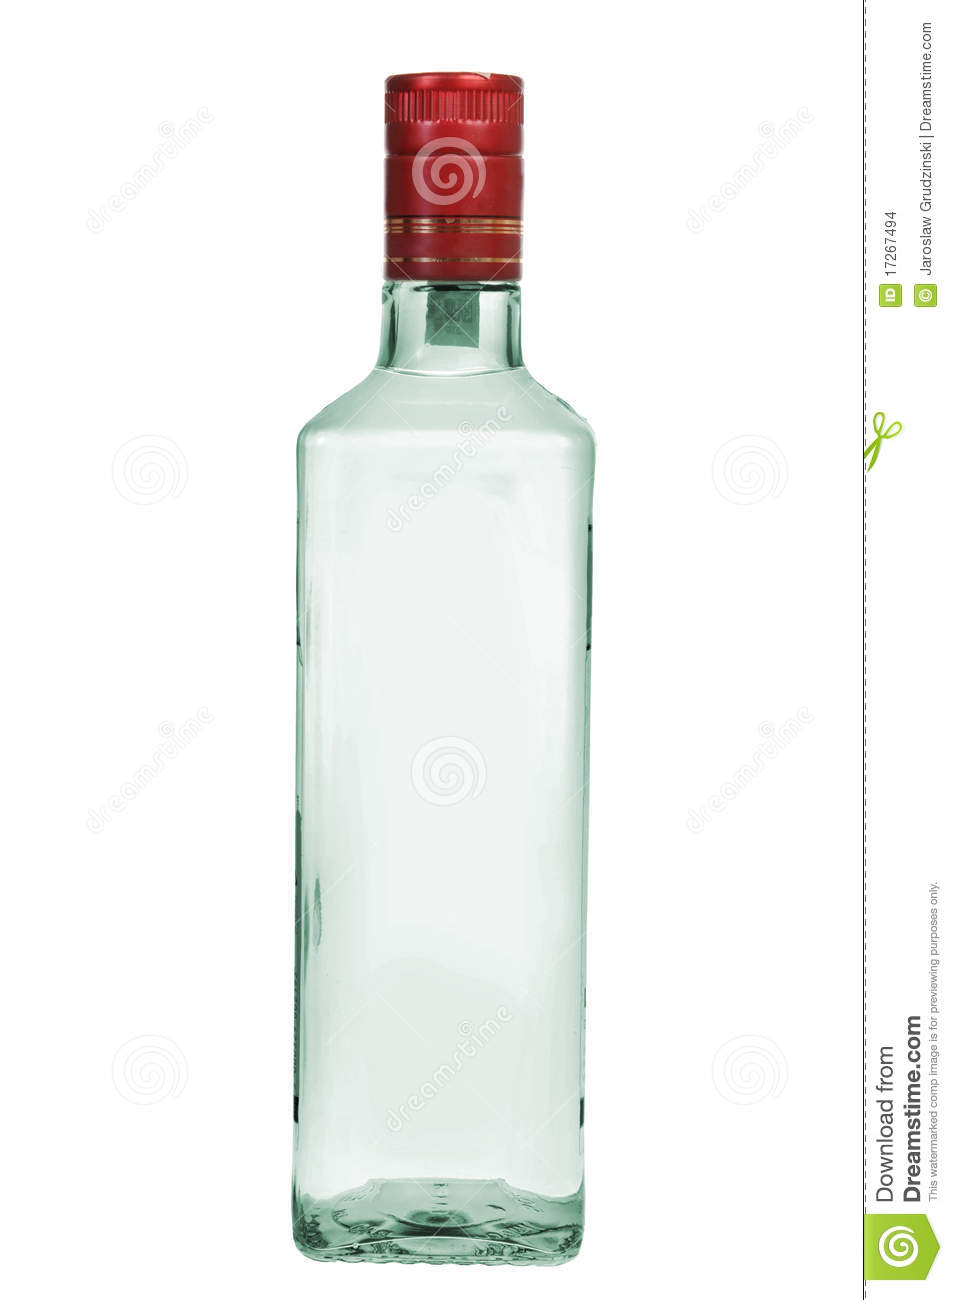 Bottle of vodka stock photo Image of detail drink